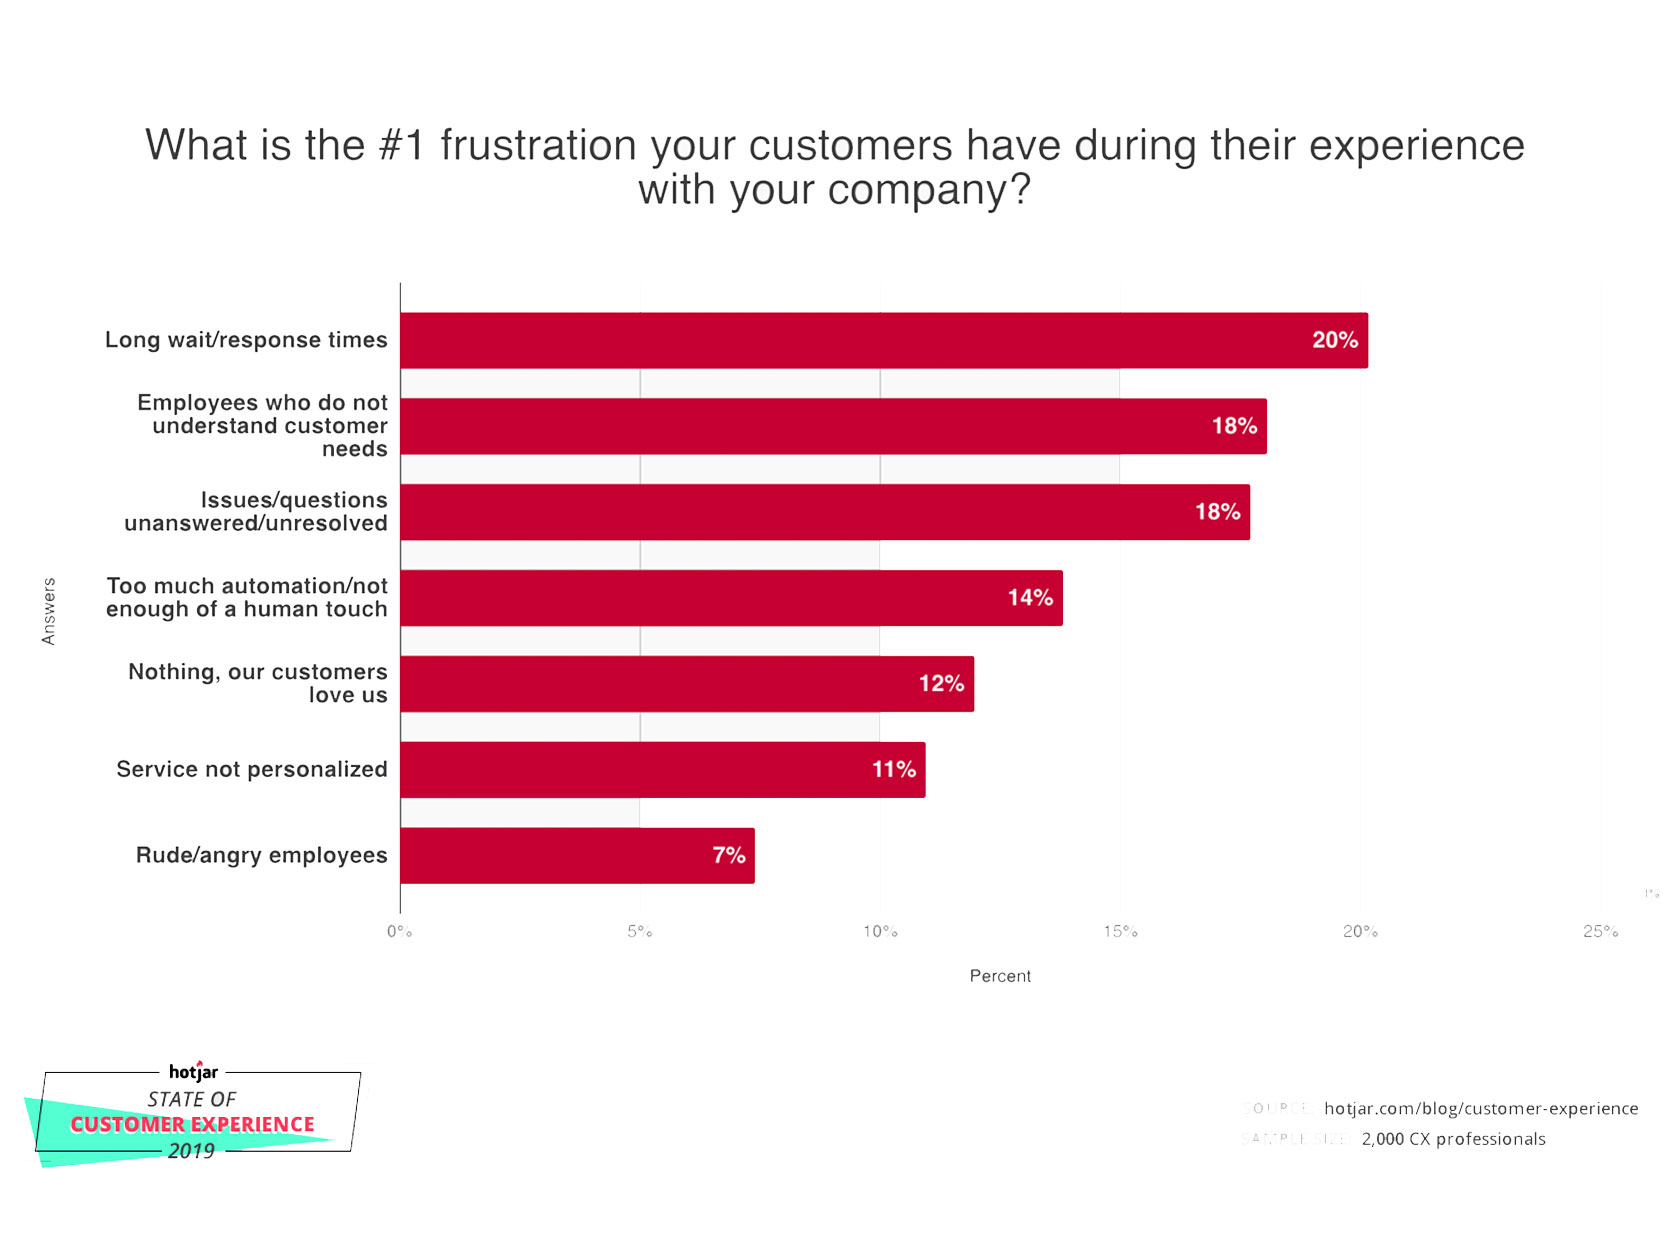 #1 frustration your customers have during their experience